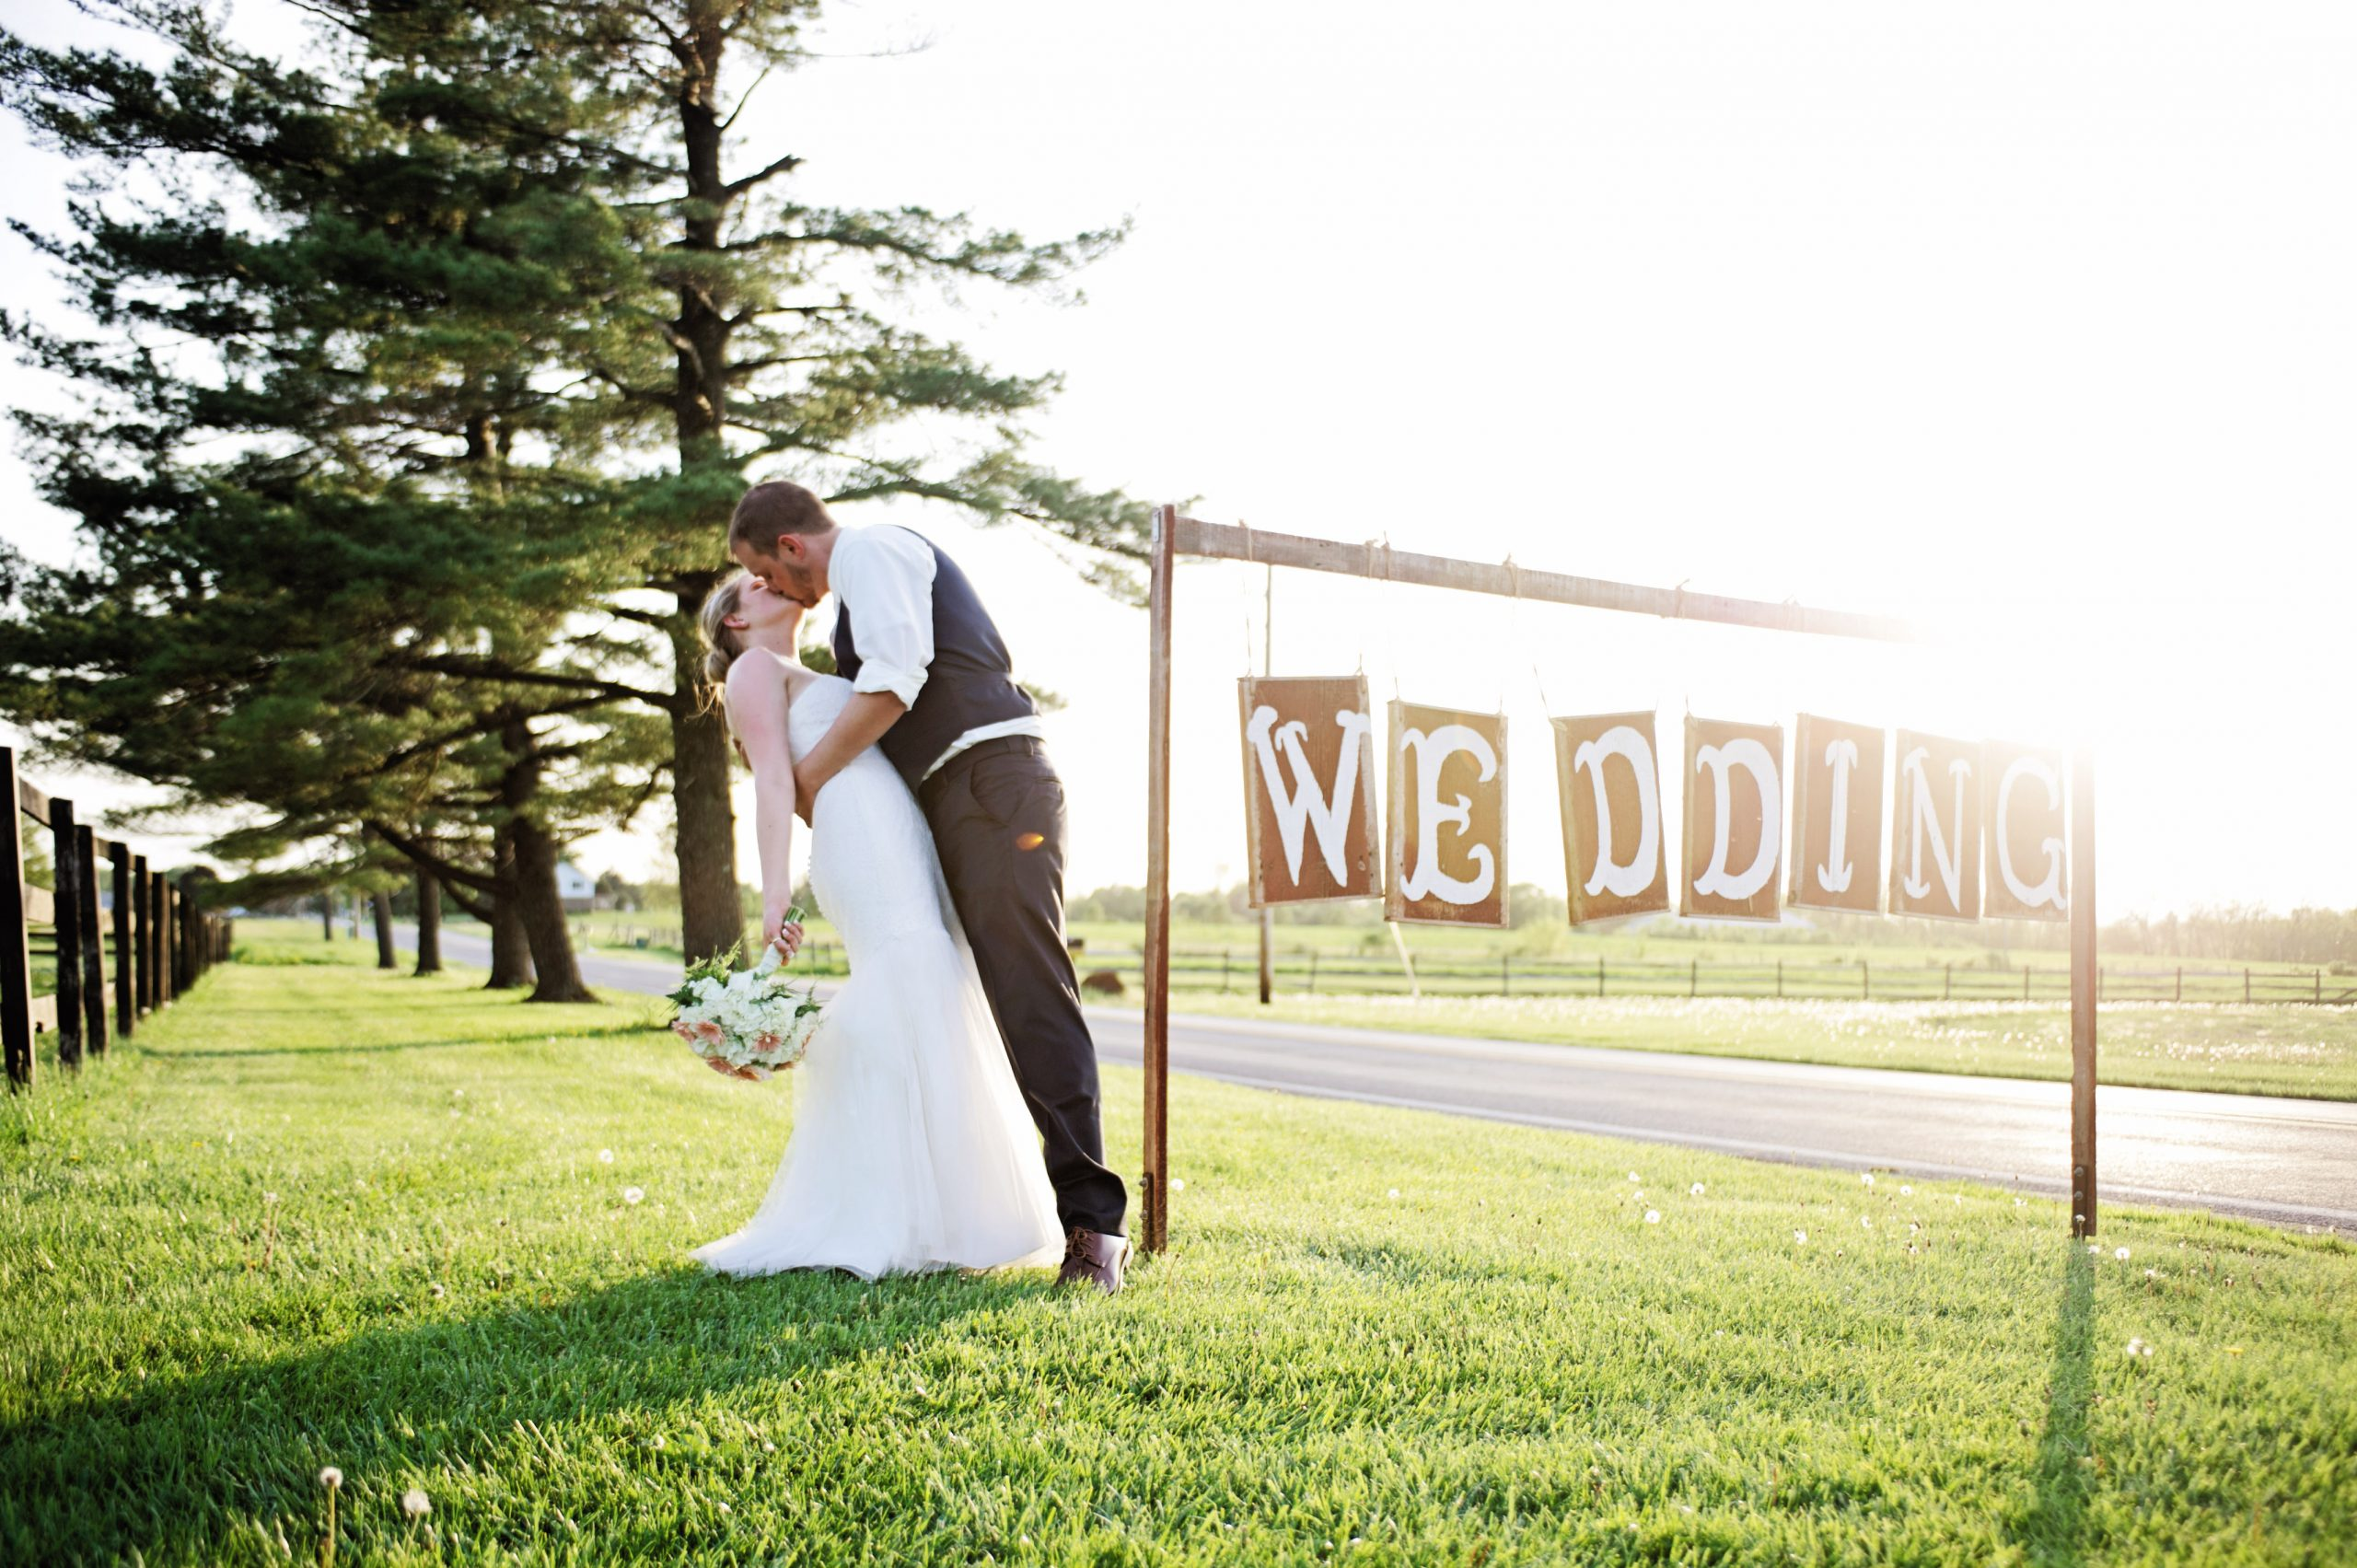 Wedding signage is the perfect way to customize your wedding and this couple did it perfectly. Photographed by Lovefusion, Lakeview Farms offered the perfect venue. Featured on Dream Weddings.